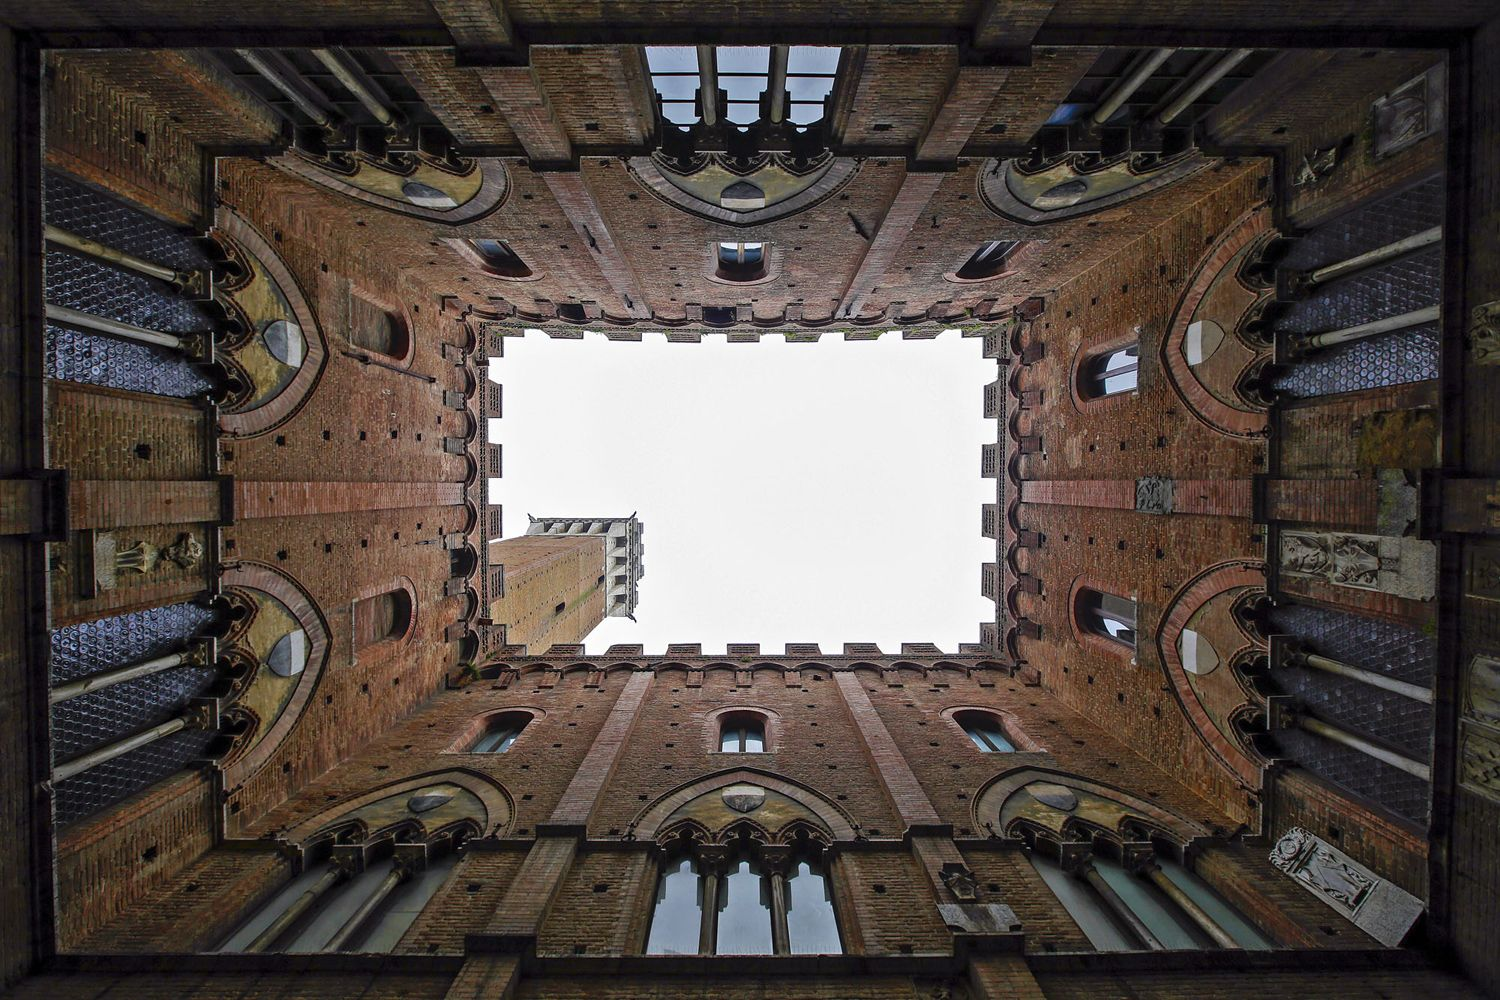 The town hall of the Mangia Tower is seen in Siena, Italy, on January 29, 2016